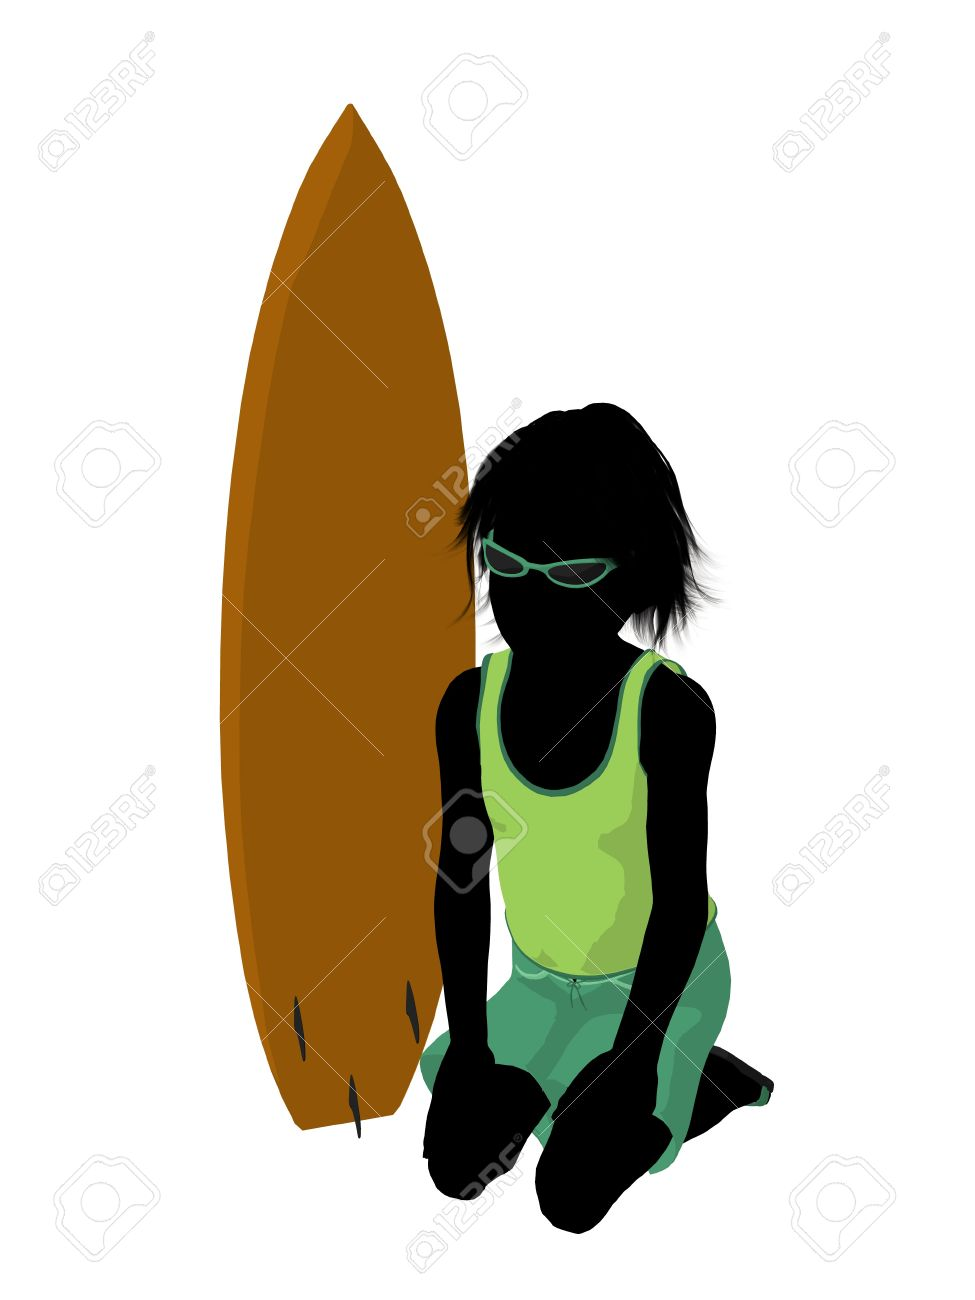 Silhouette boy surfboard clipart graphic black and white Beach Boy With Surfboard Illustration Silhouette On A White ... graphic black and white